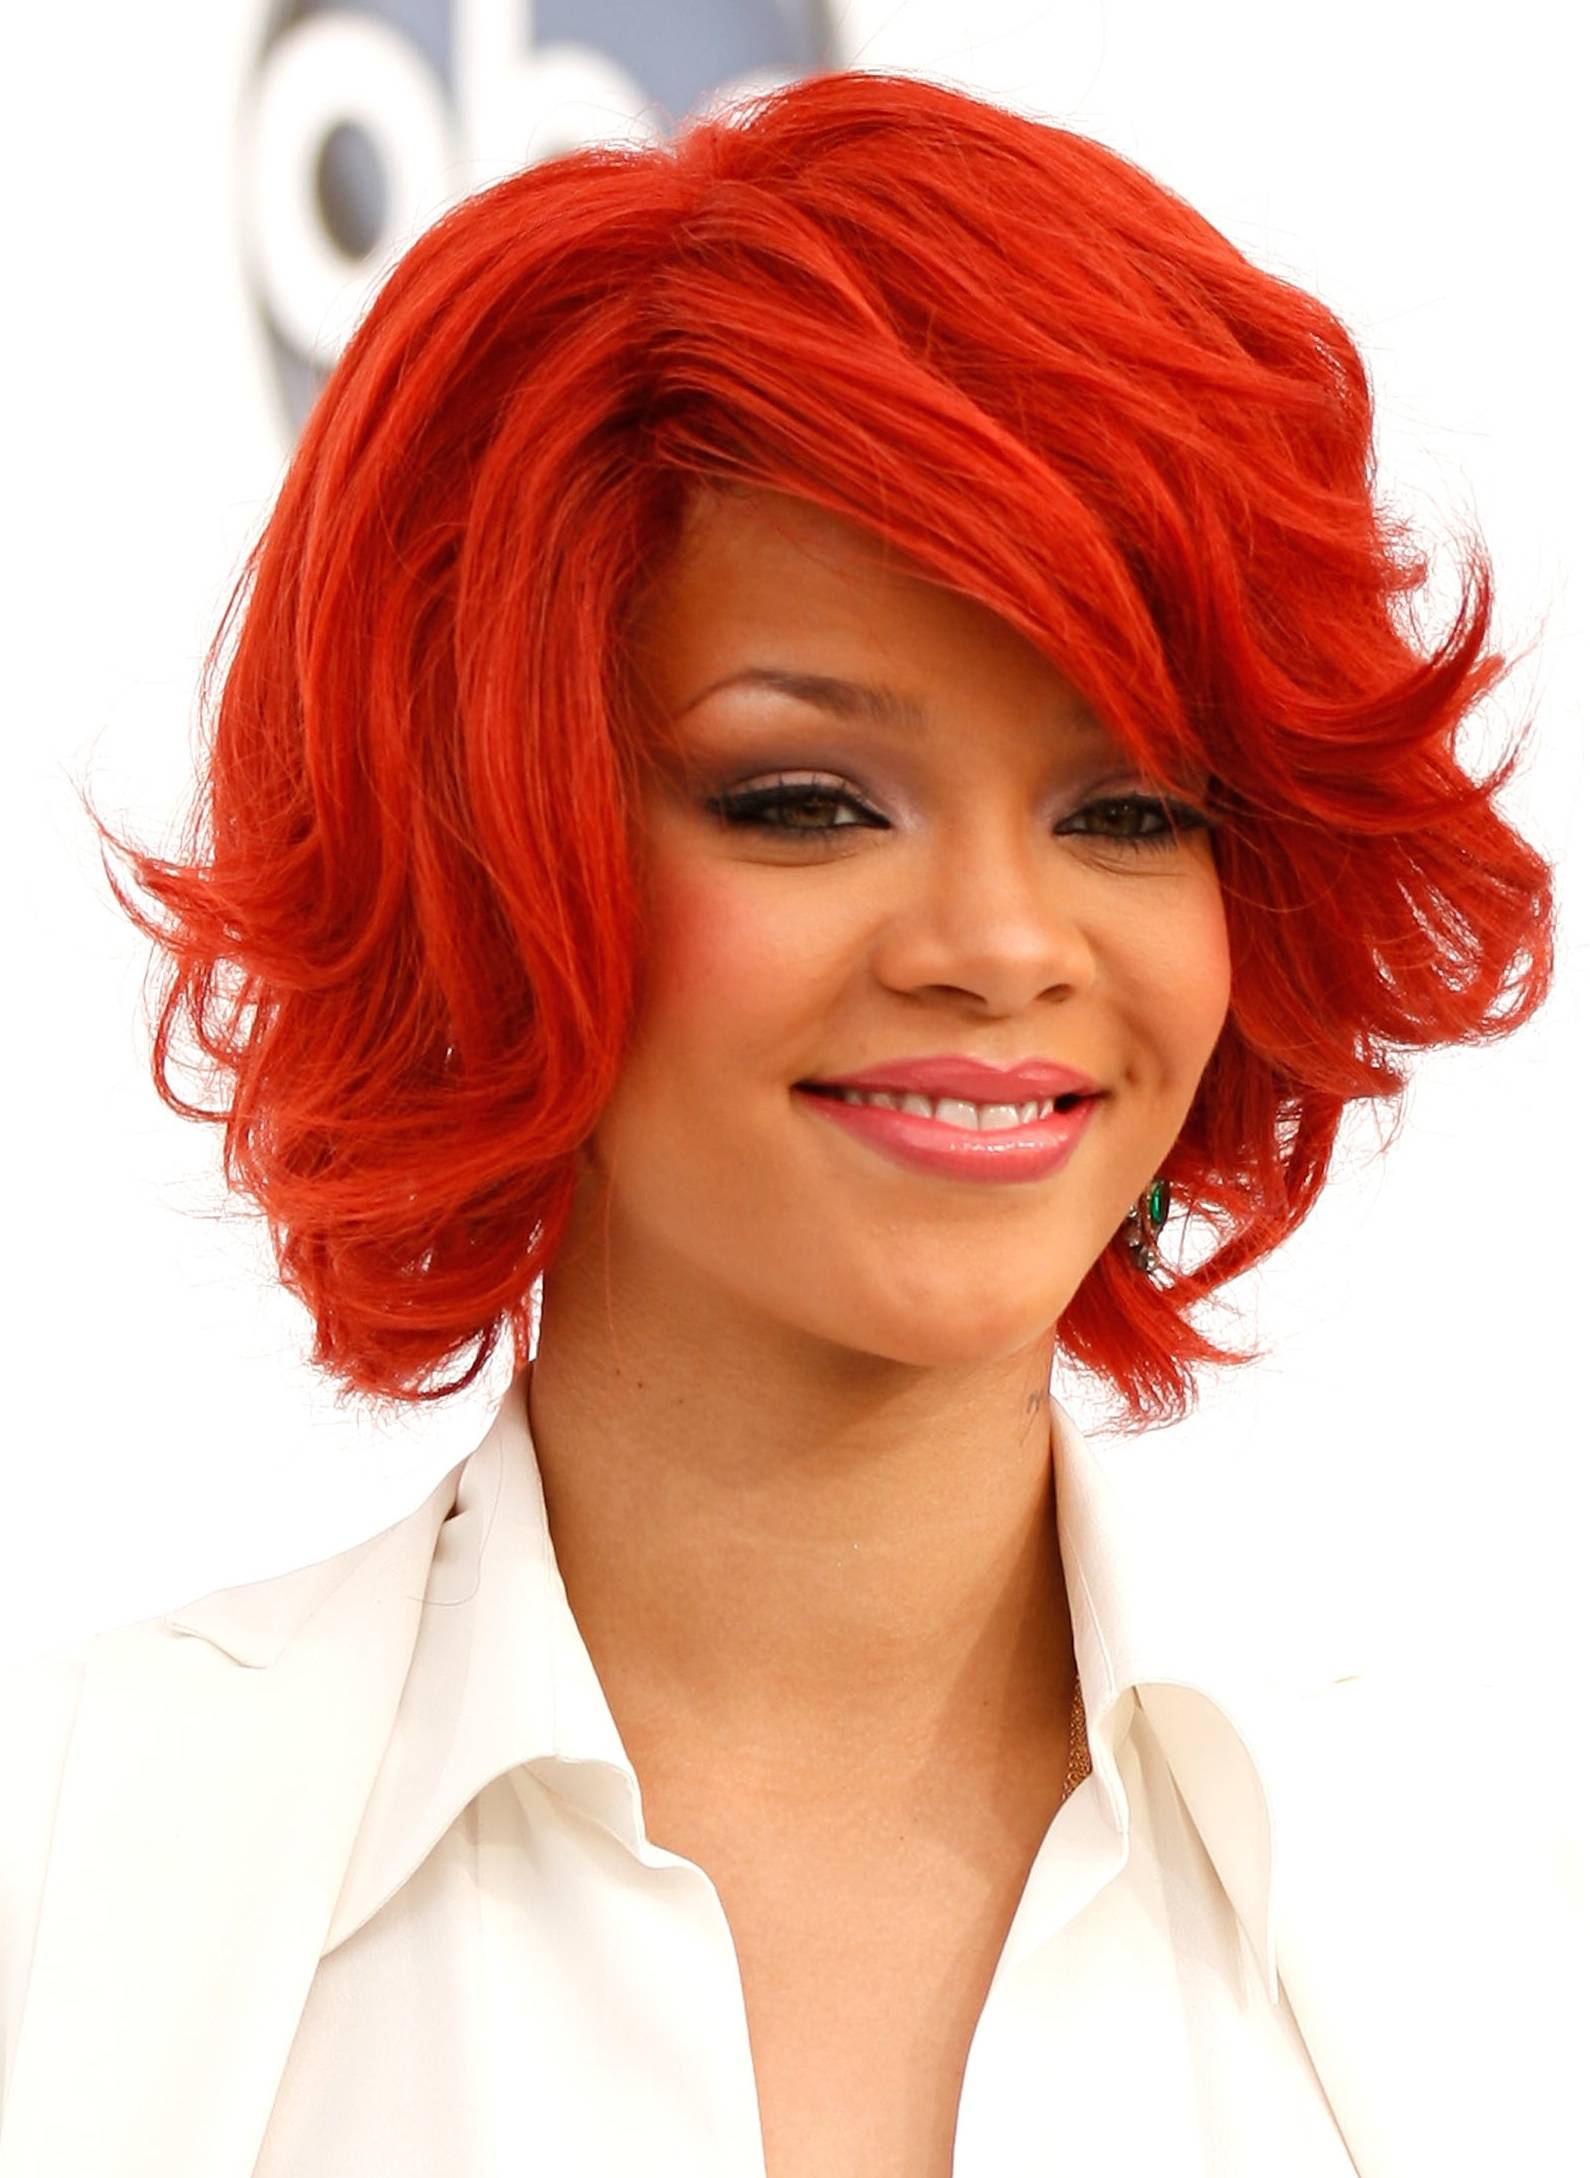 20 Amazing Bright Colors for Hair | MegaPics